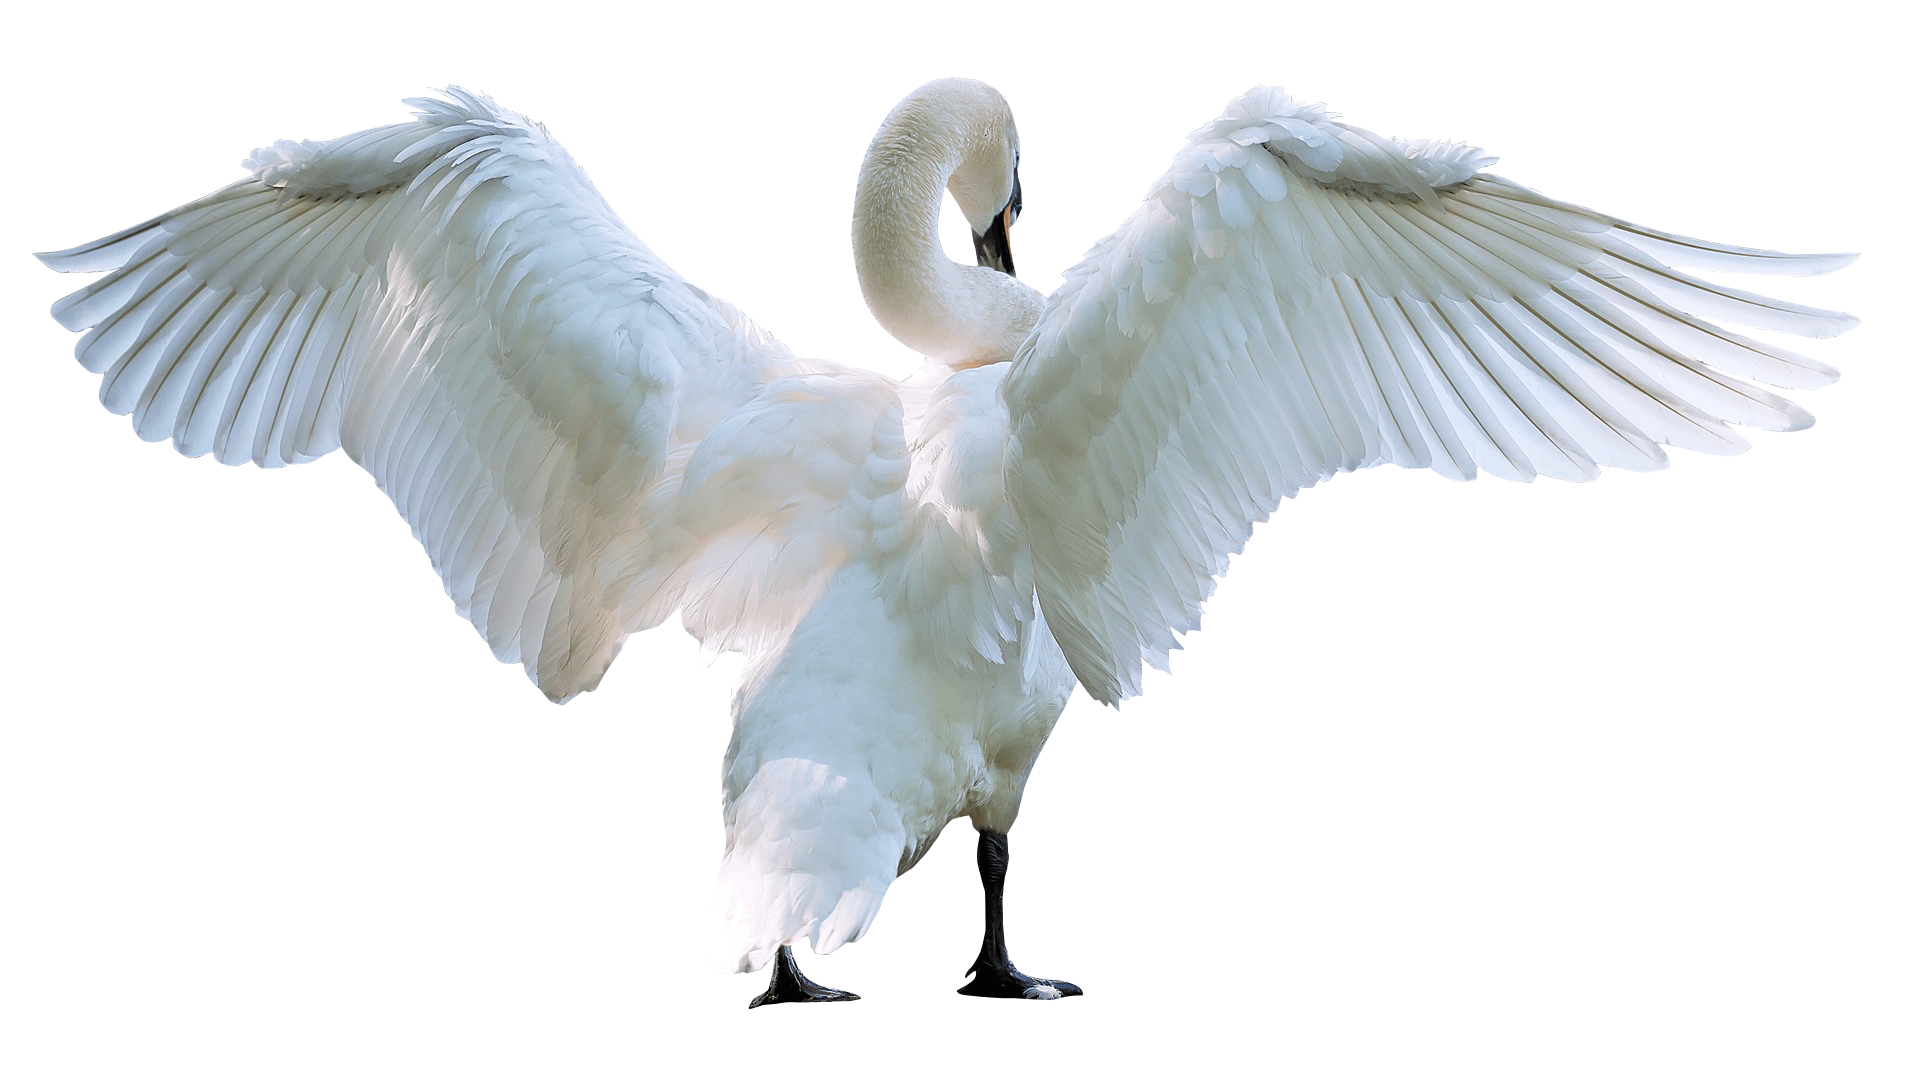 Wing clipart swan. Starting fly png image